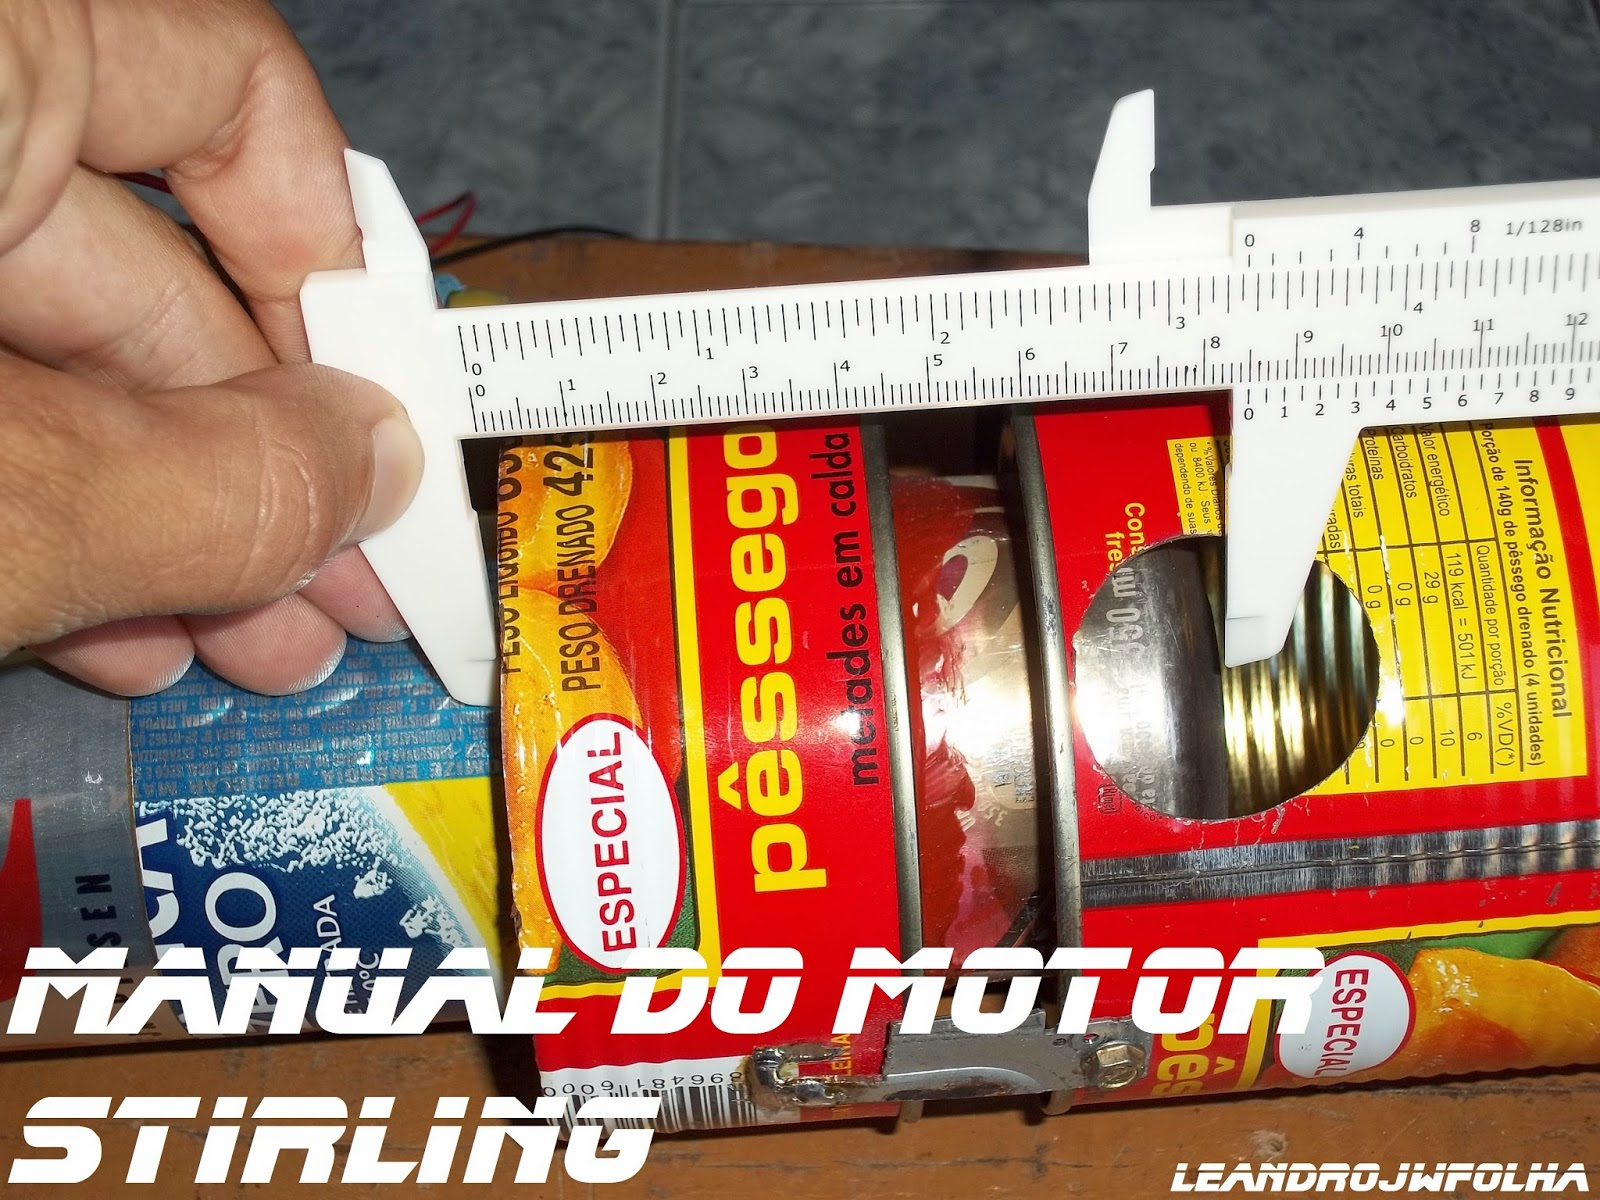 Manual do motor Stirling, 85 mm de comprimento o cilindro quente